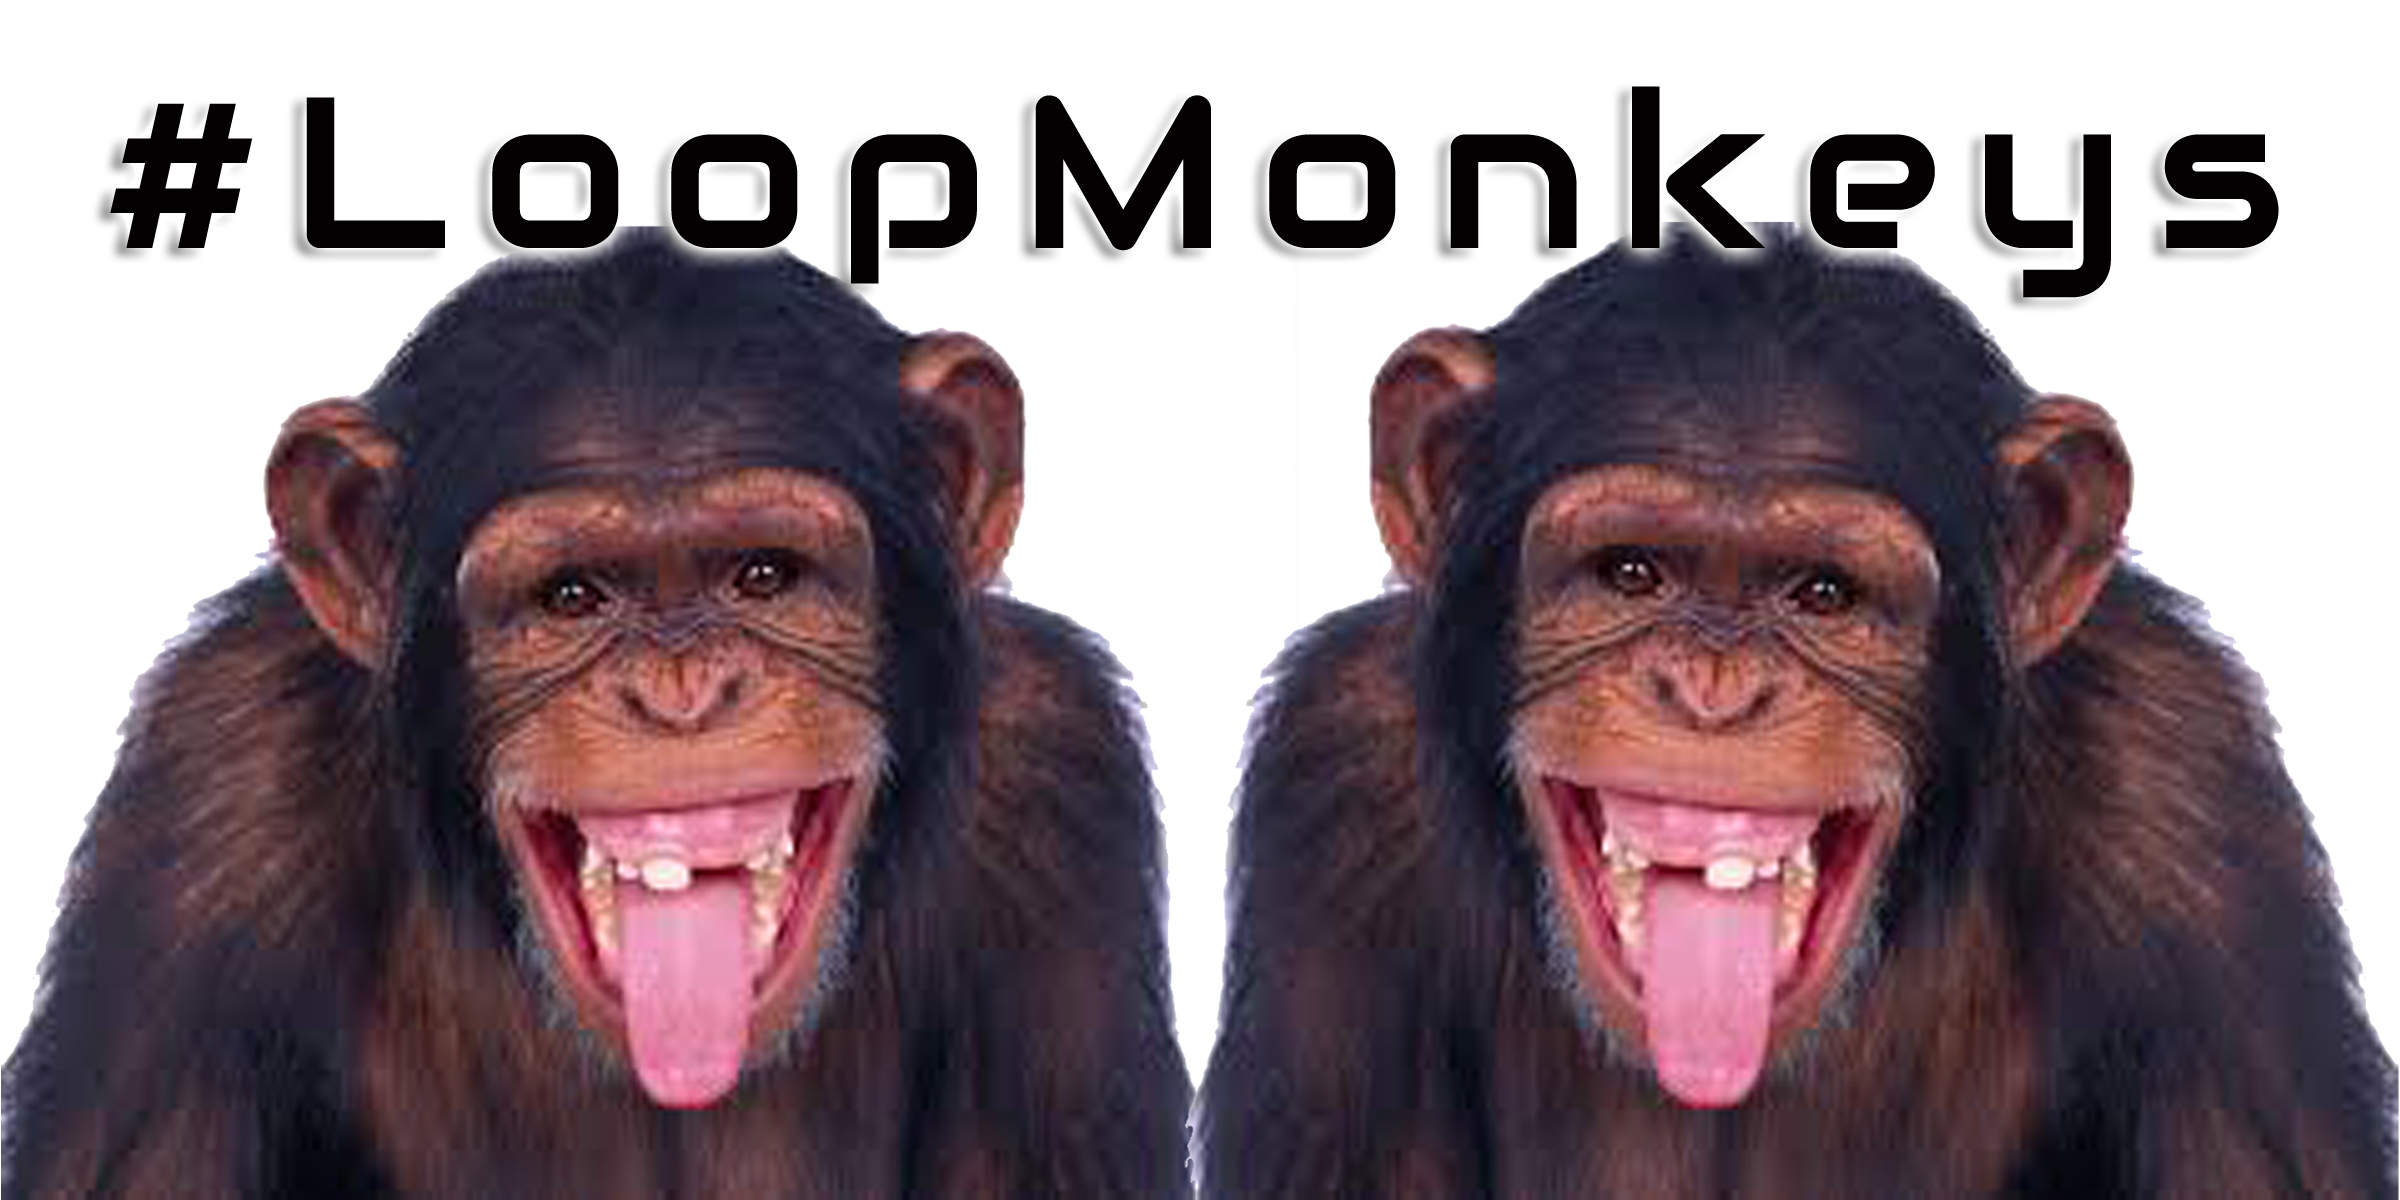 #LoopMonkeys Project :: Born to Funk You!